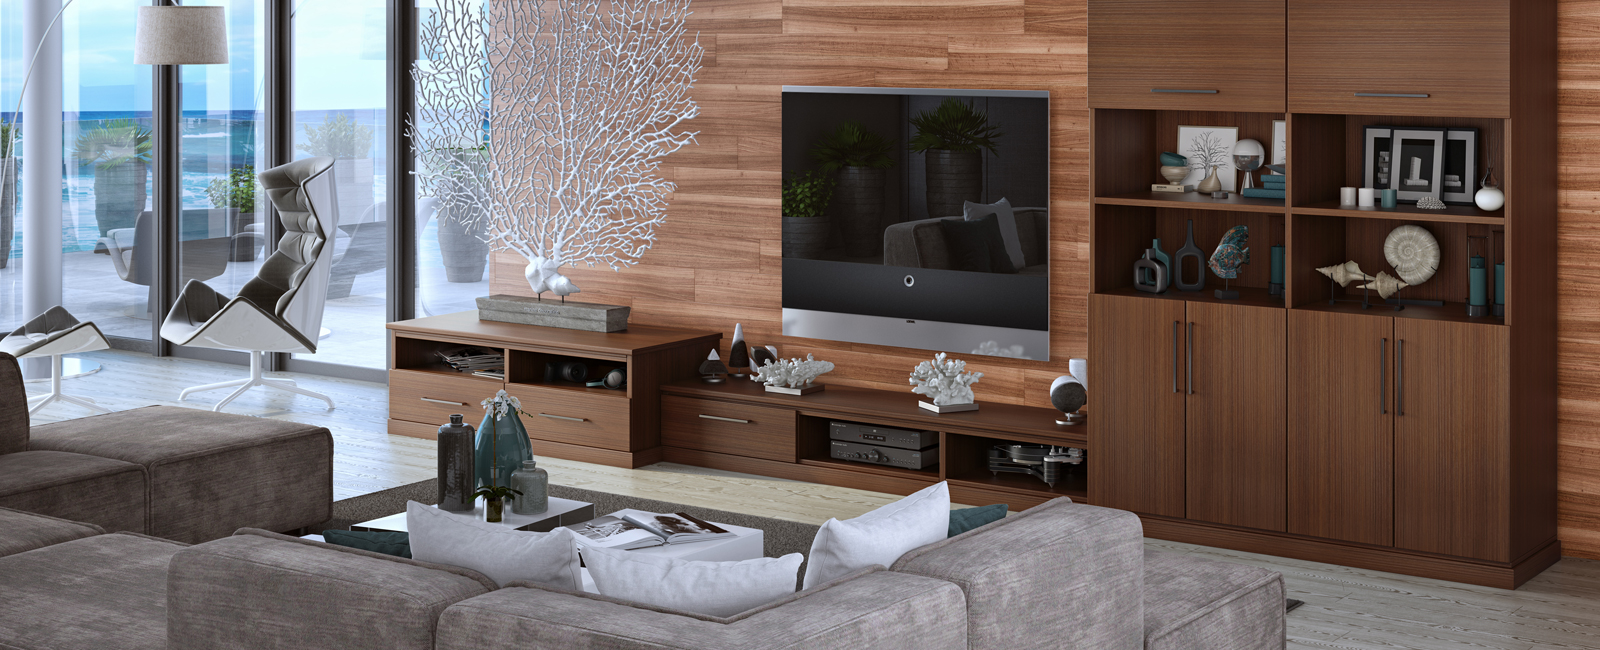 wall_unit_banner3